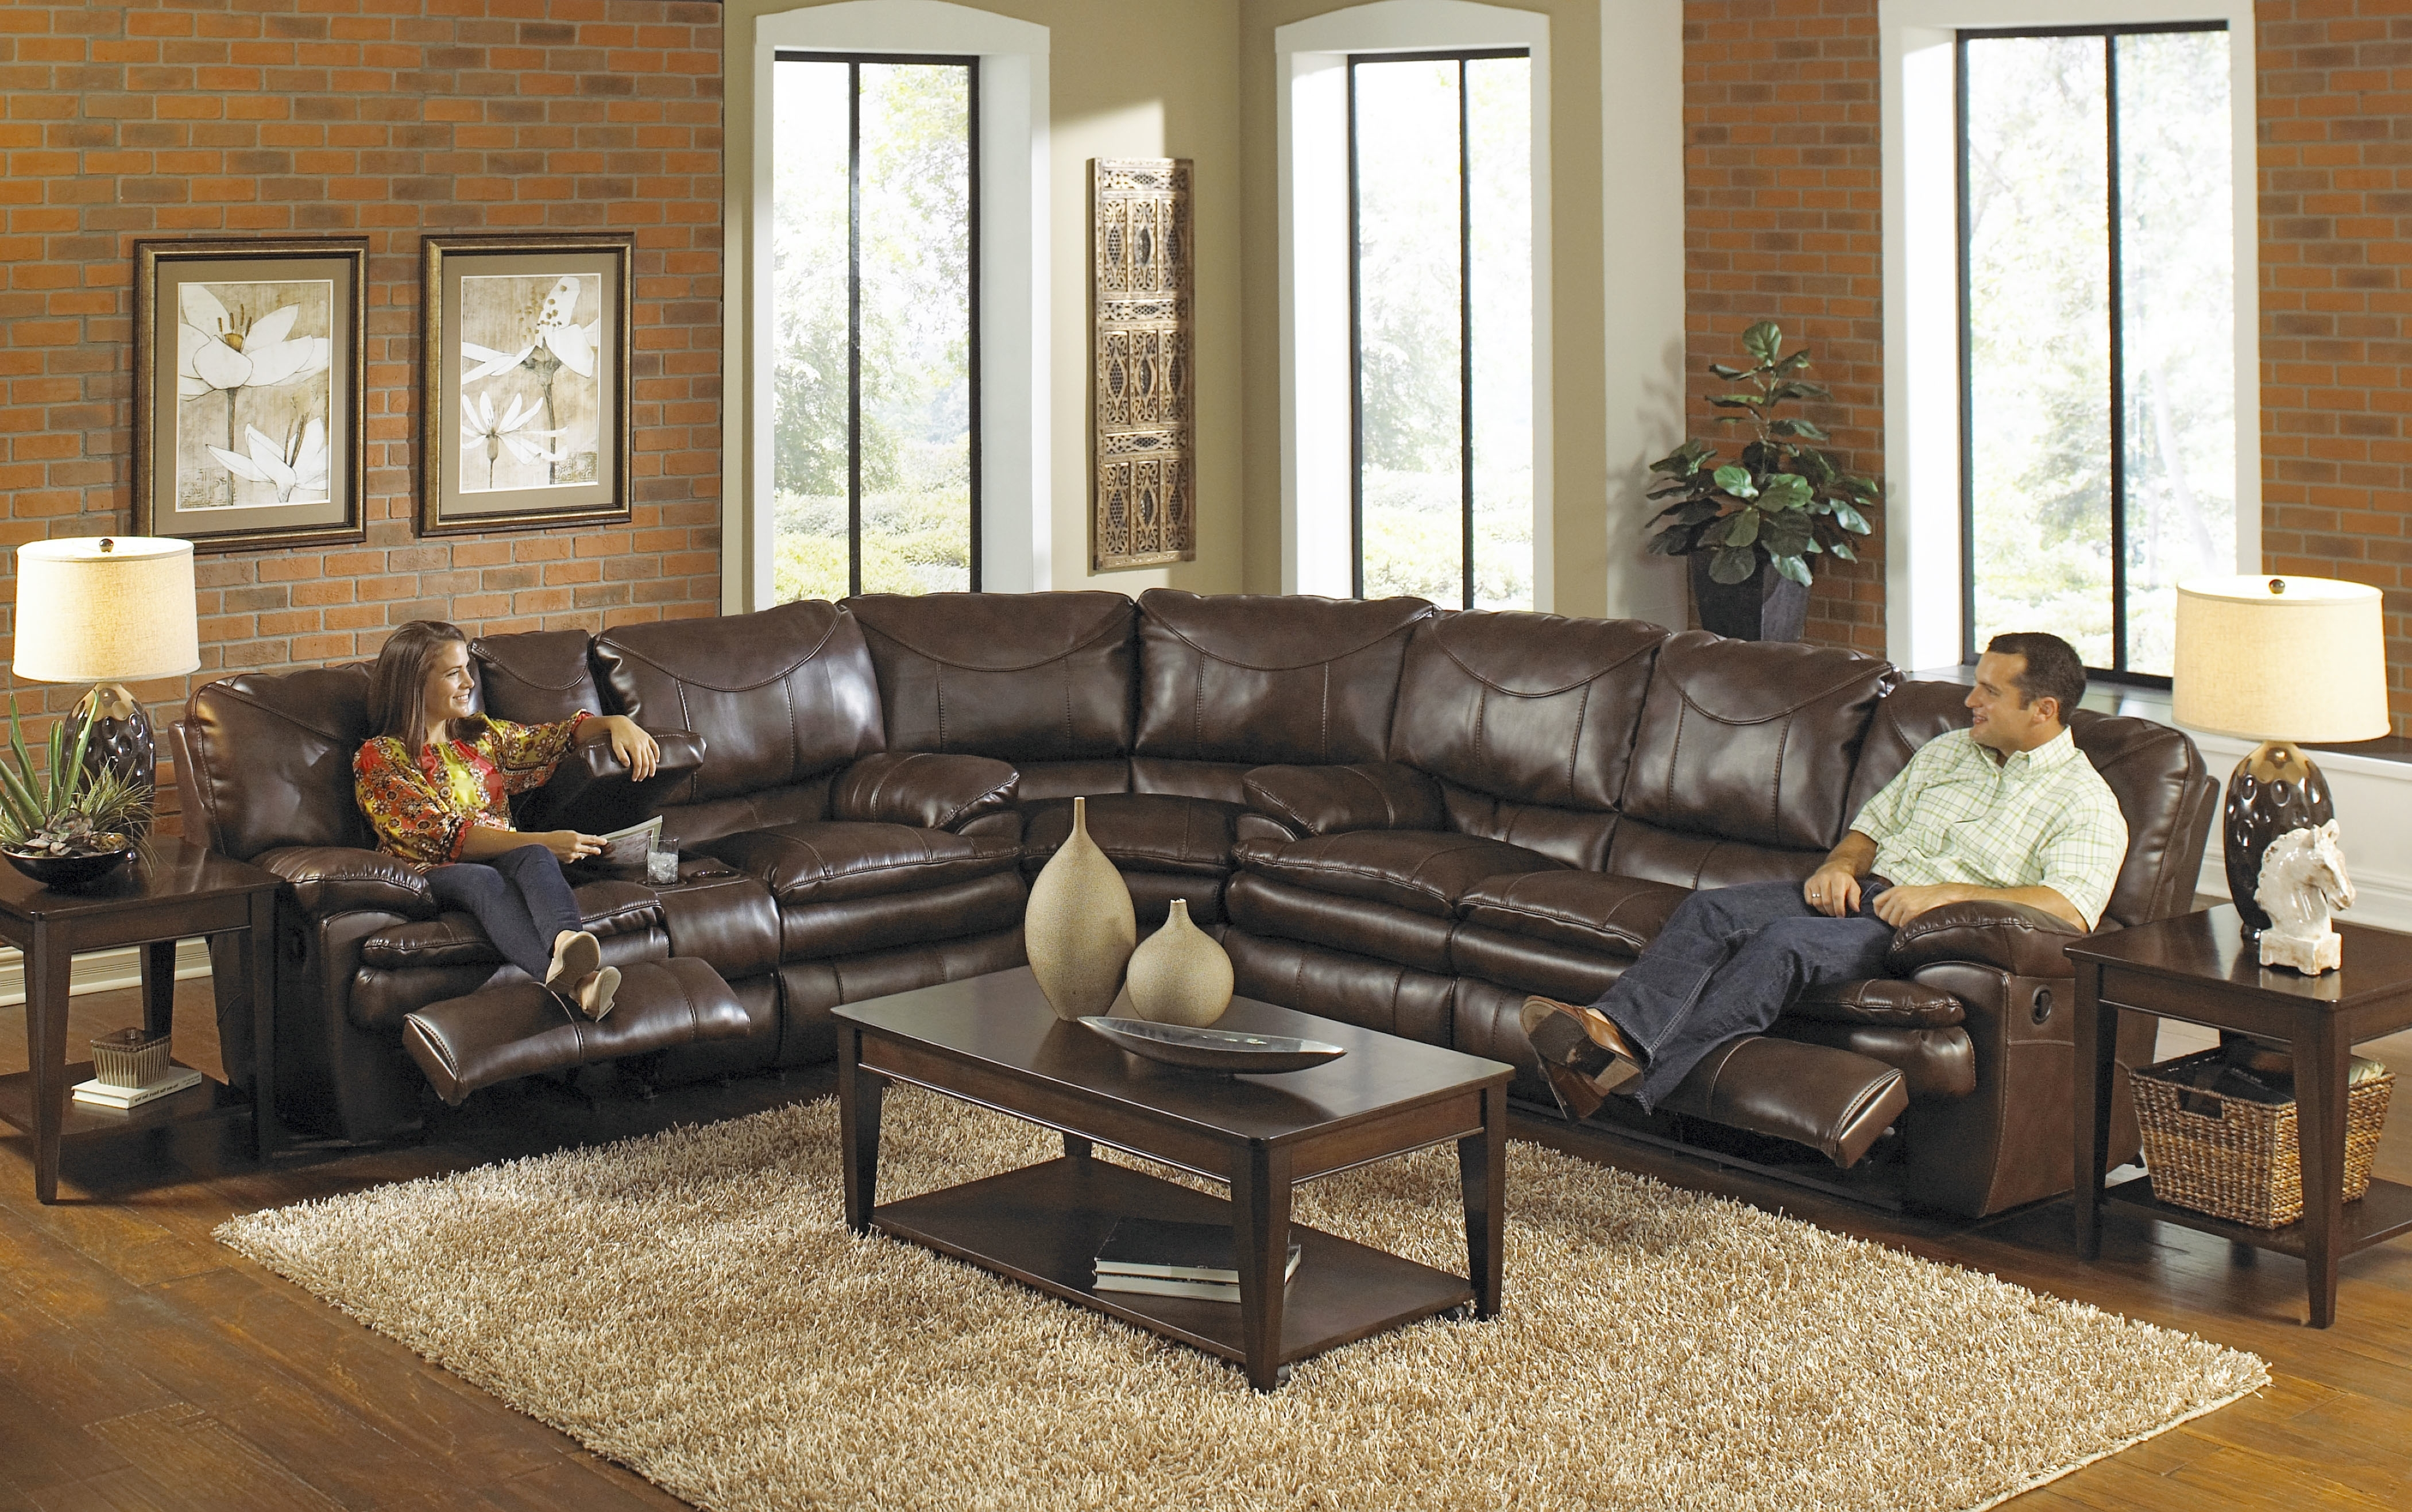 Buy Large Sectional Sofas Perfect For Your Large Living Room In Well Known Large Sectional Sofas (View 3 of 20)